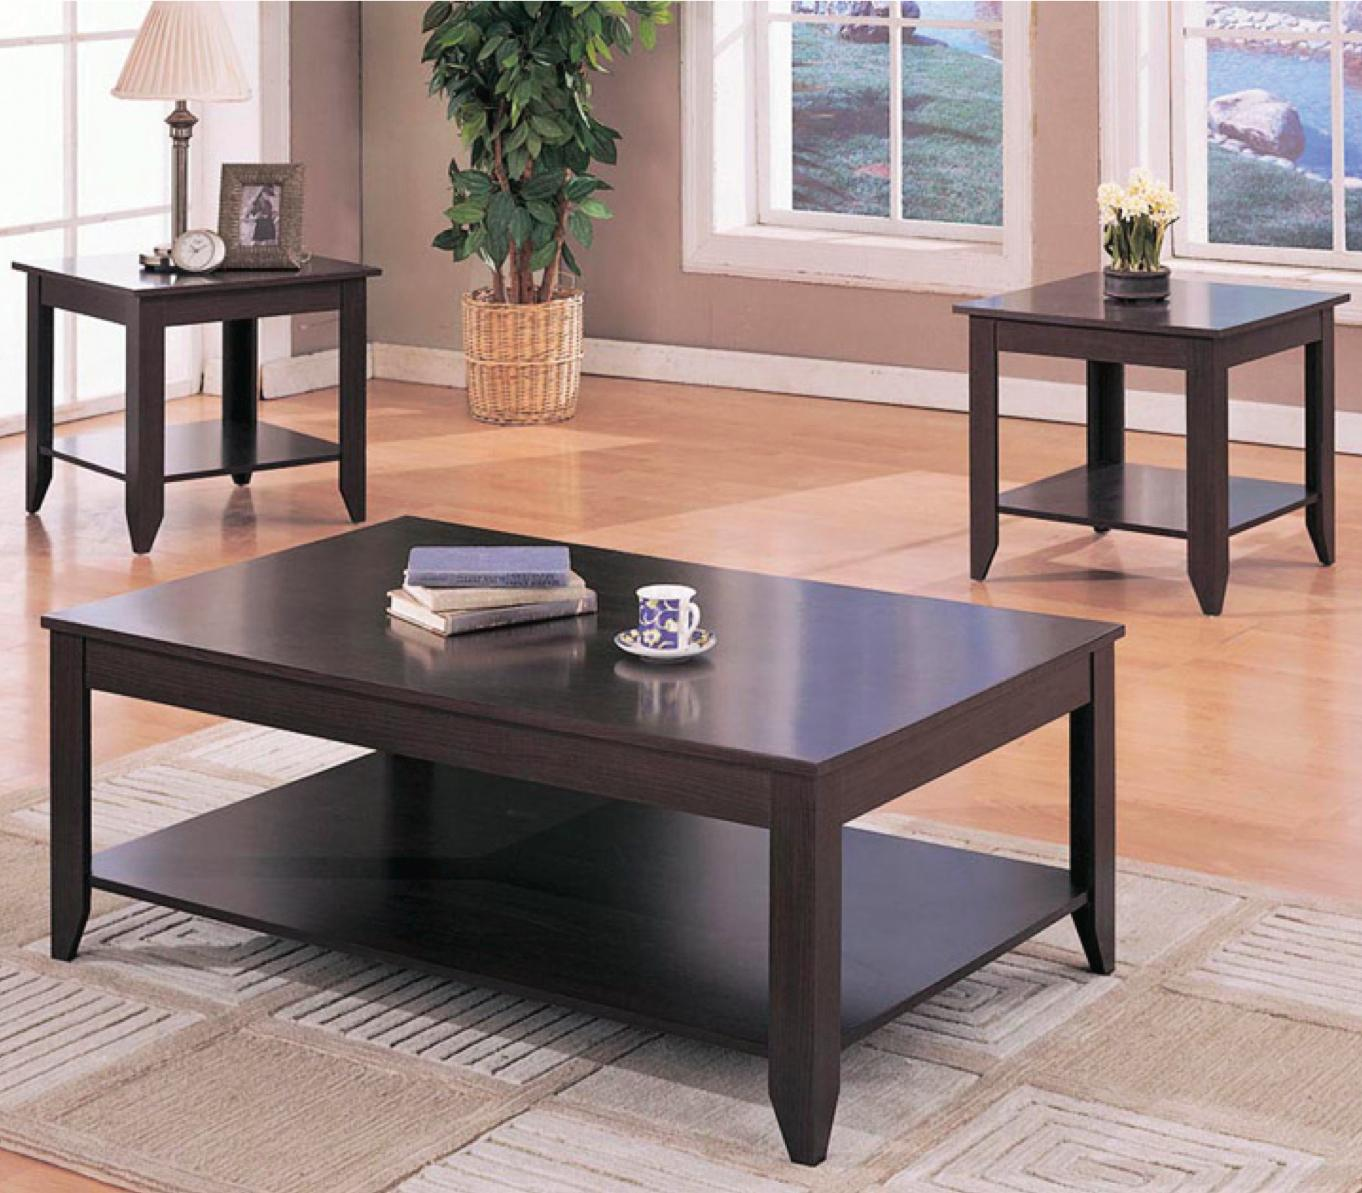 coaster occasional table sets contemporary piece products color coffee tables and end set black brown side used mission style furniture iron pipe frame ashley home bedroom dark